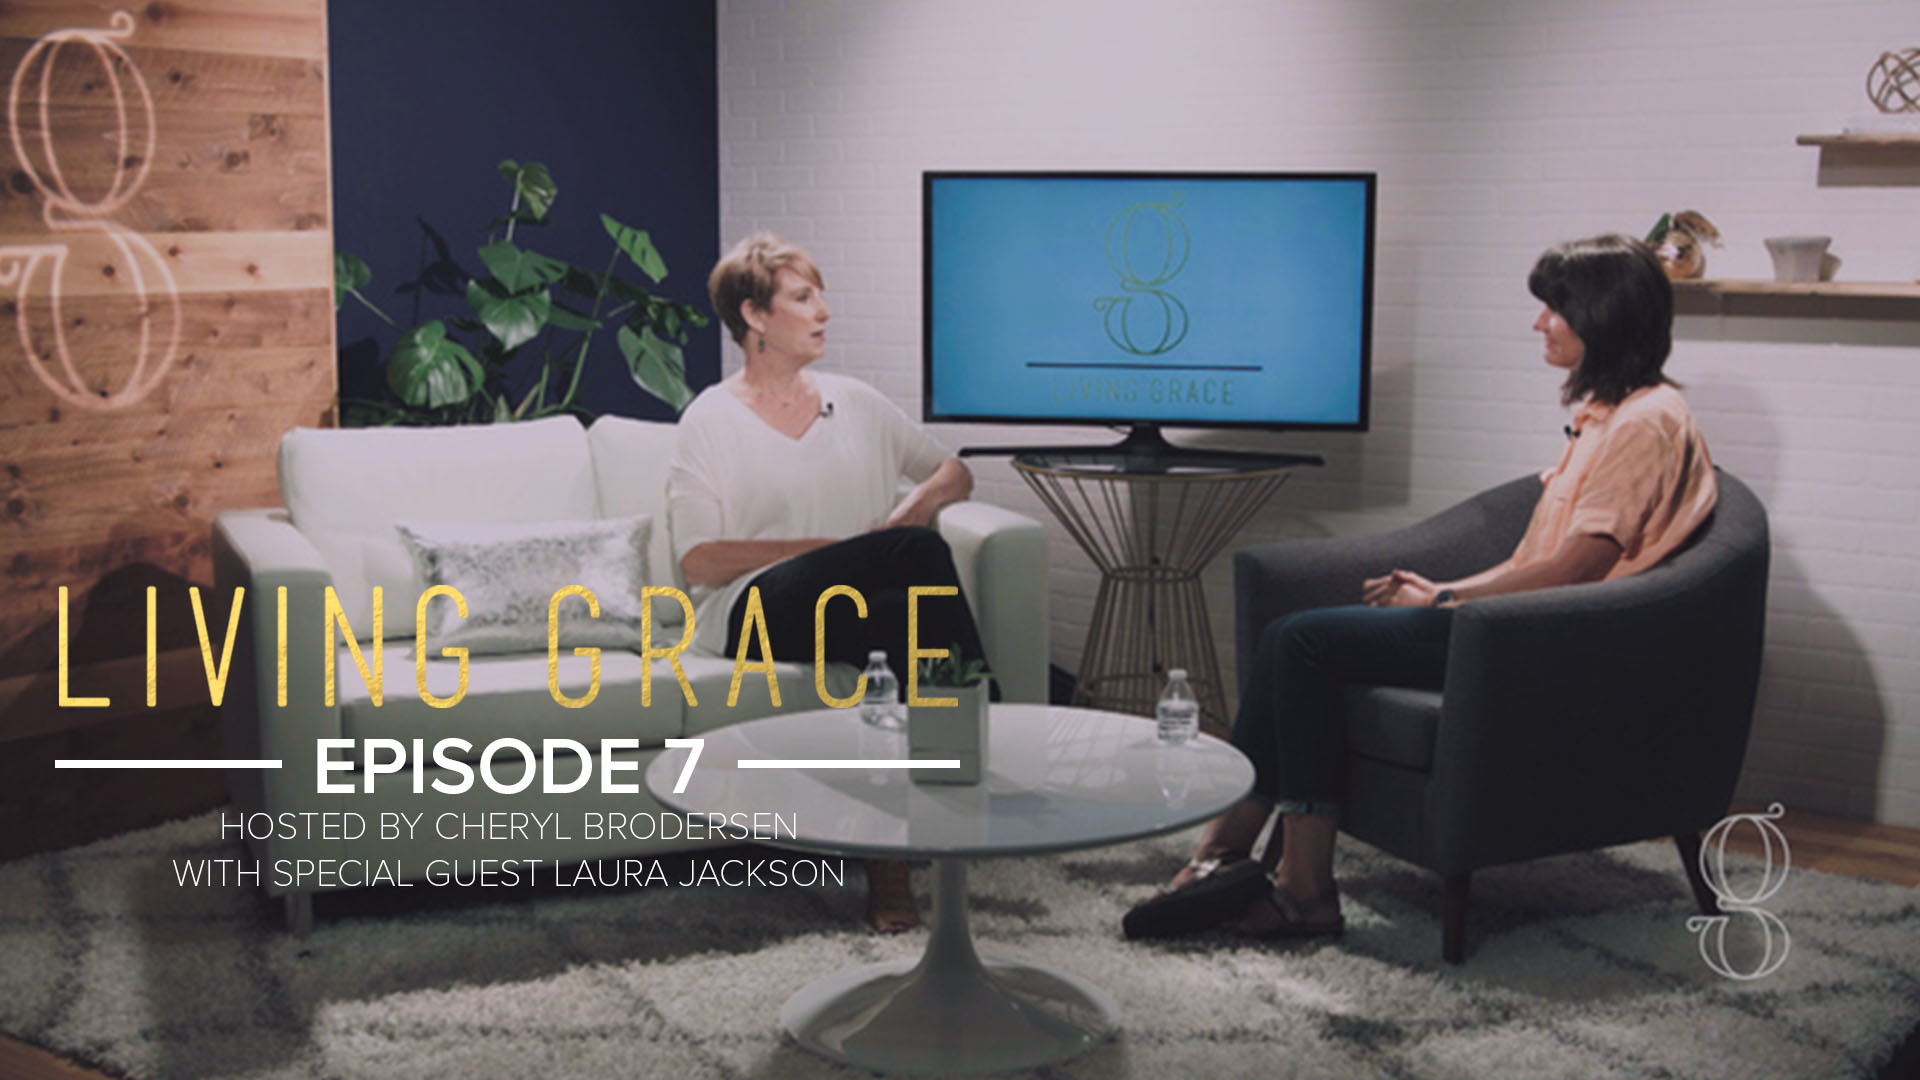 Living Grace Episode 7 - Interview with Laura Jackson